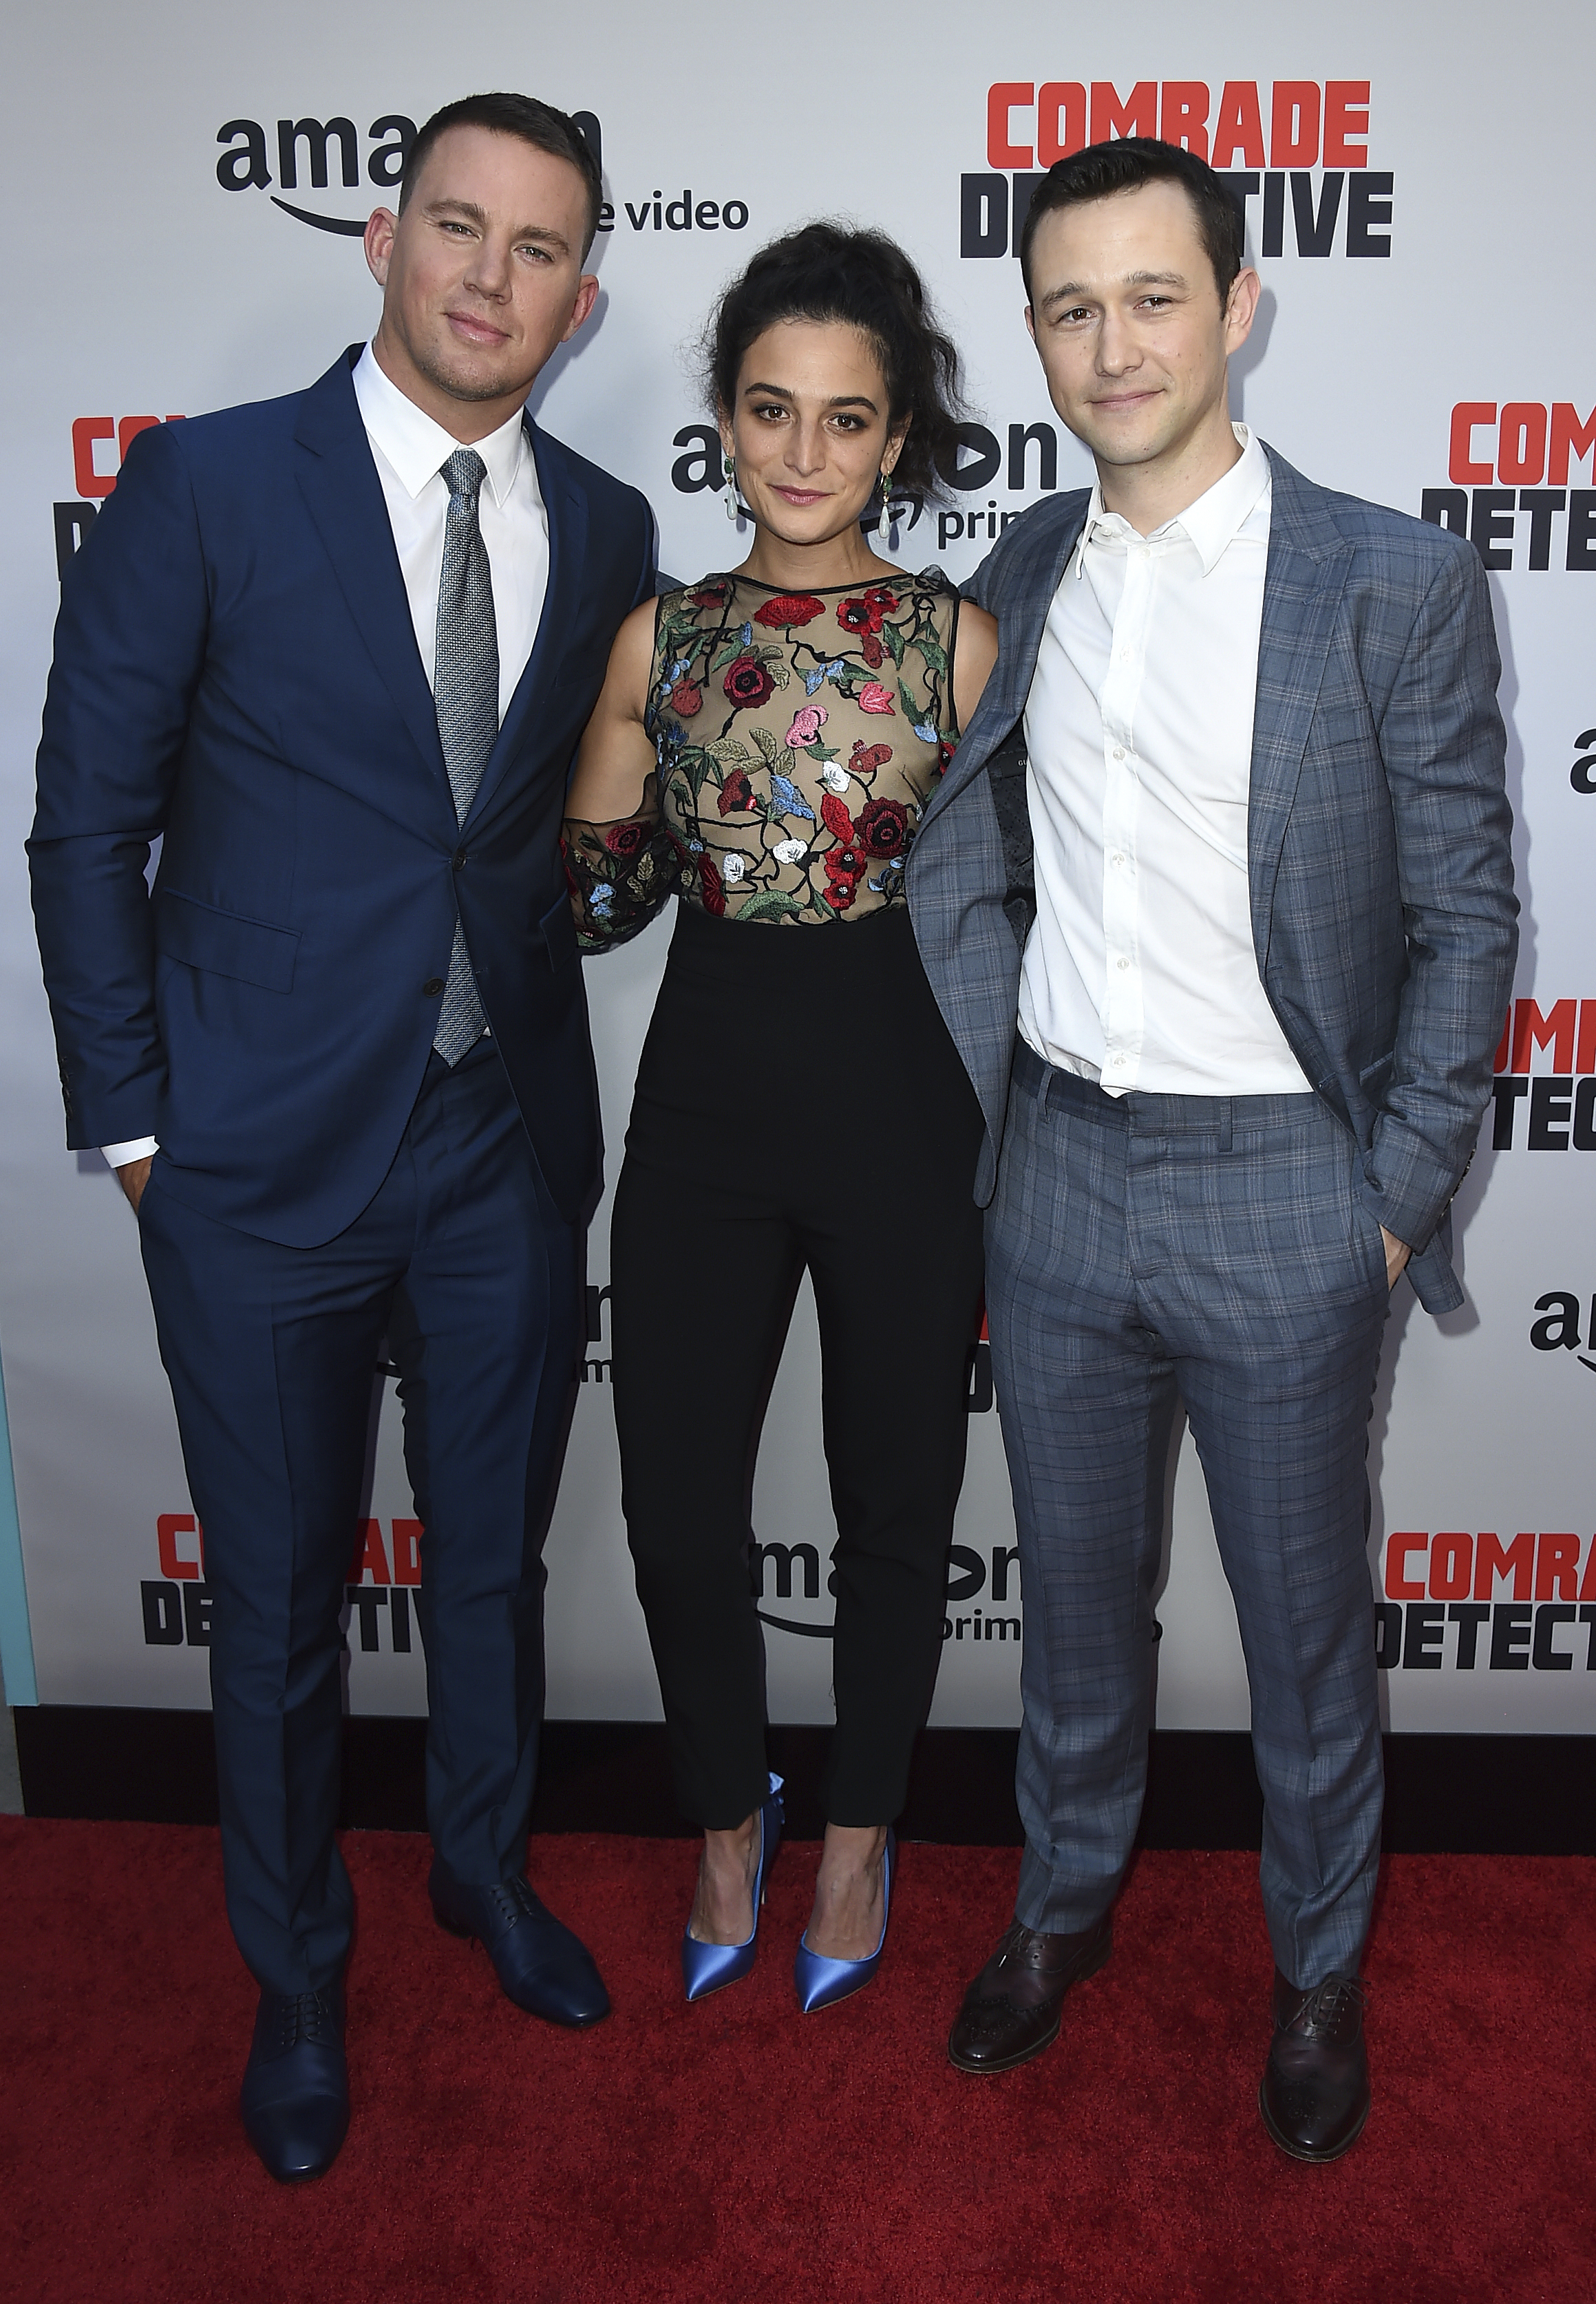 Channing Tatum, Jenny Slate and Joseph Gordon-Levitt